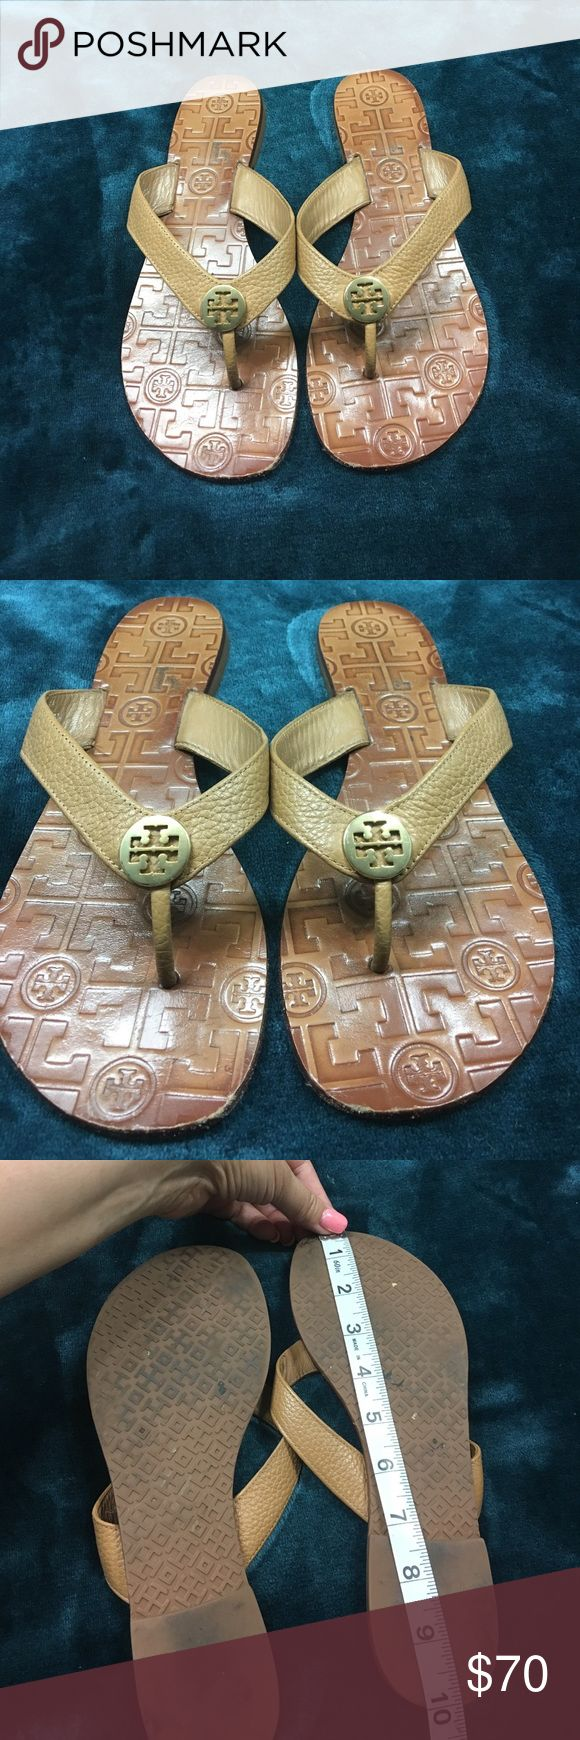 Tory Burch leather flip flop sandals Pebbled Leather Camel Color. Last two pics show gold Hardware pulling away from leather. True size 8M. Tory Burch Shoes Sandals